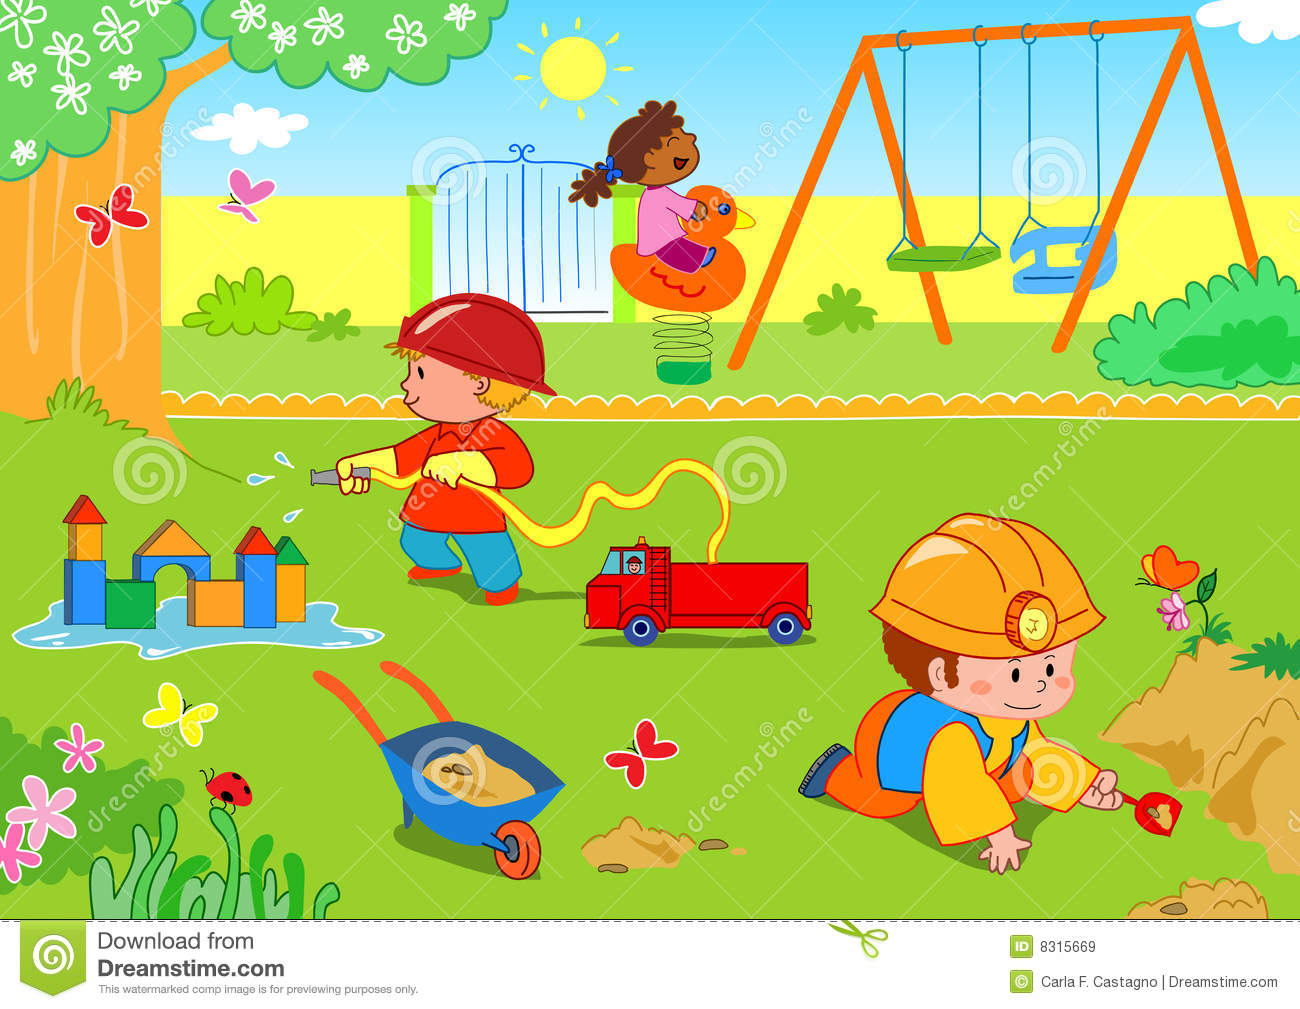 Children playing in a park clip art.